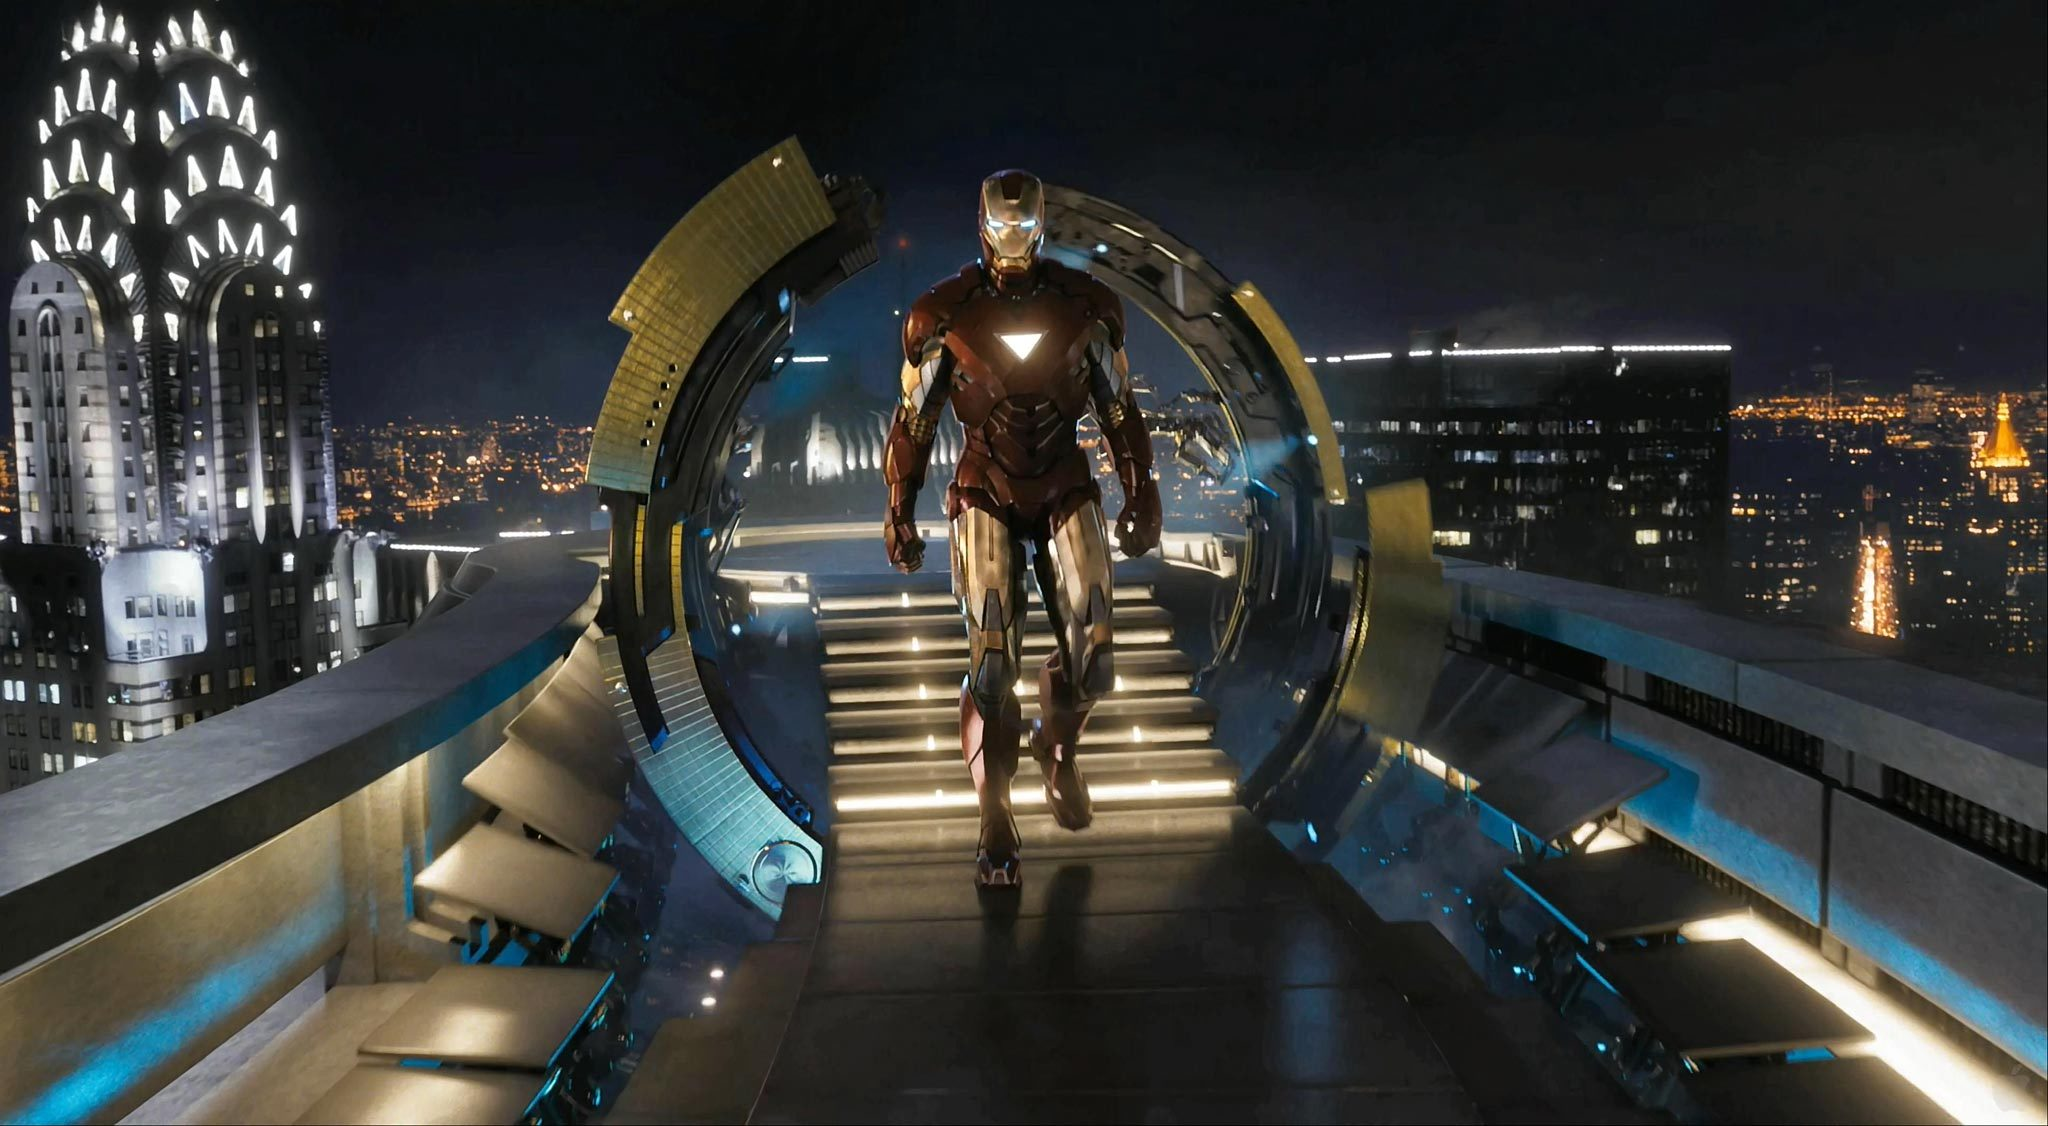 Popular Iron Man images for mobile phone